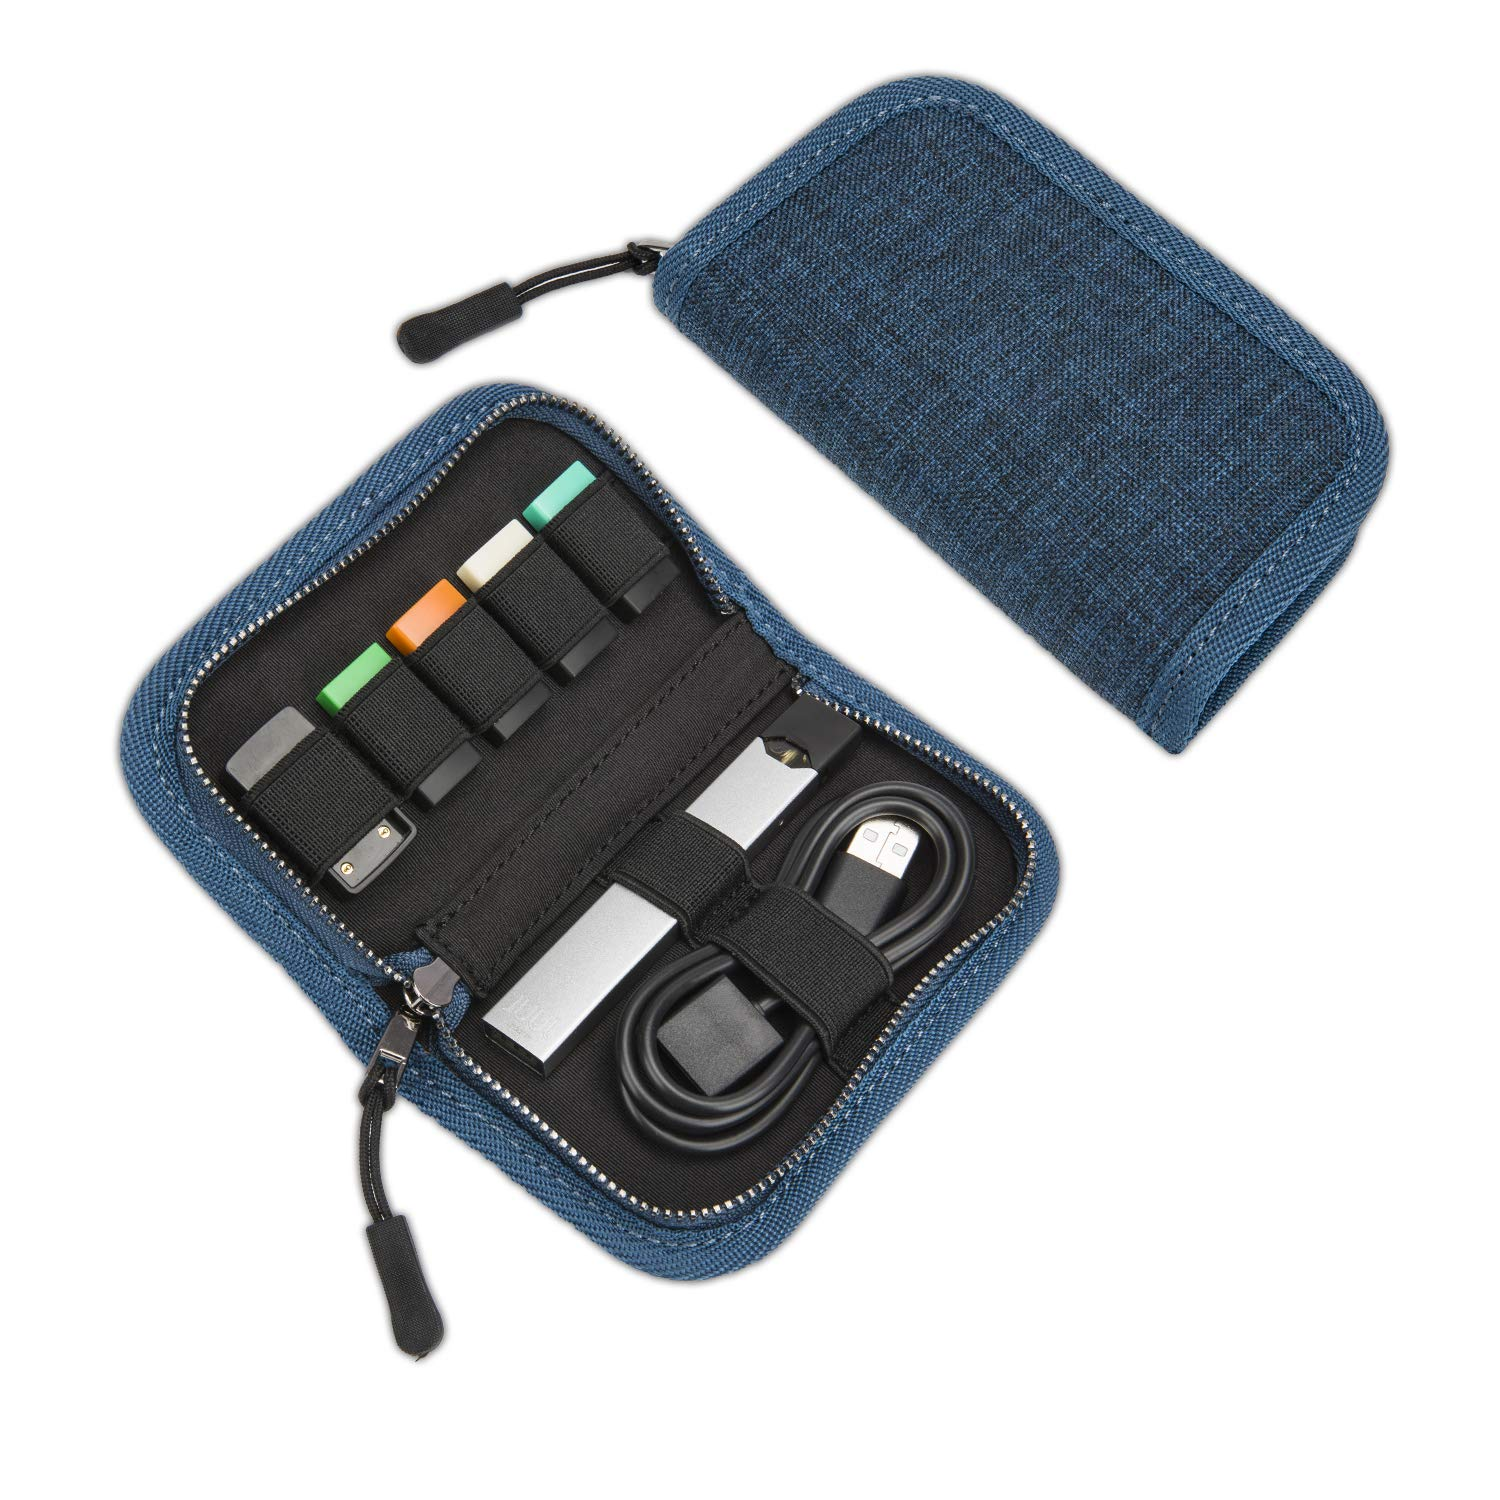 SummerPlus Travel Storage case for Your Pocket or Bag Blue Carrying Case Compatible with JUUL Device not Included